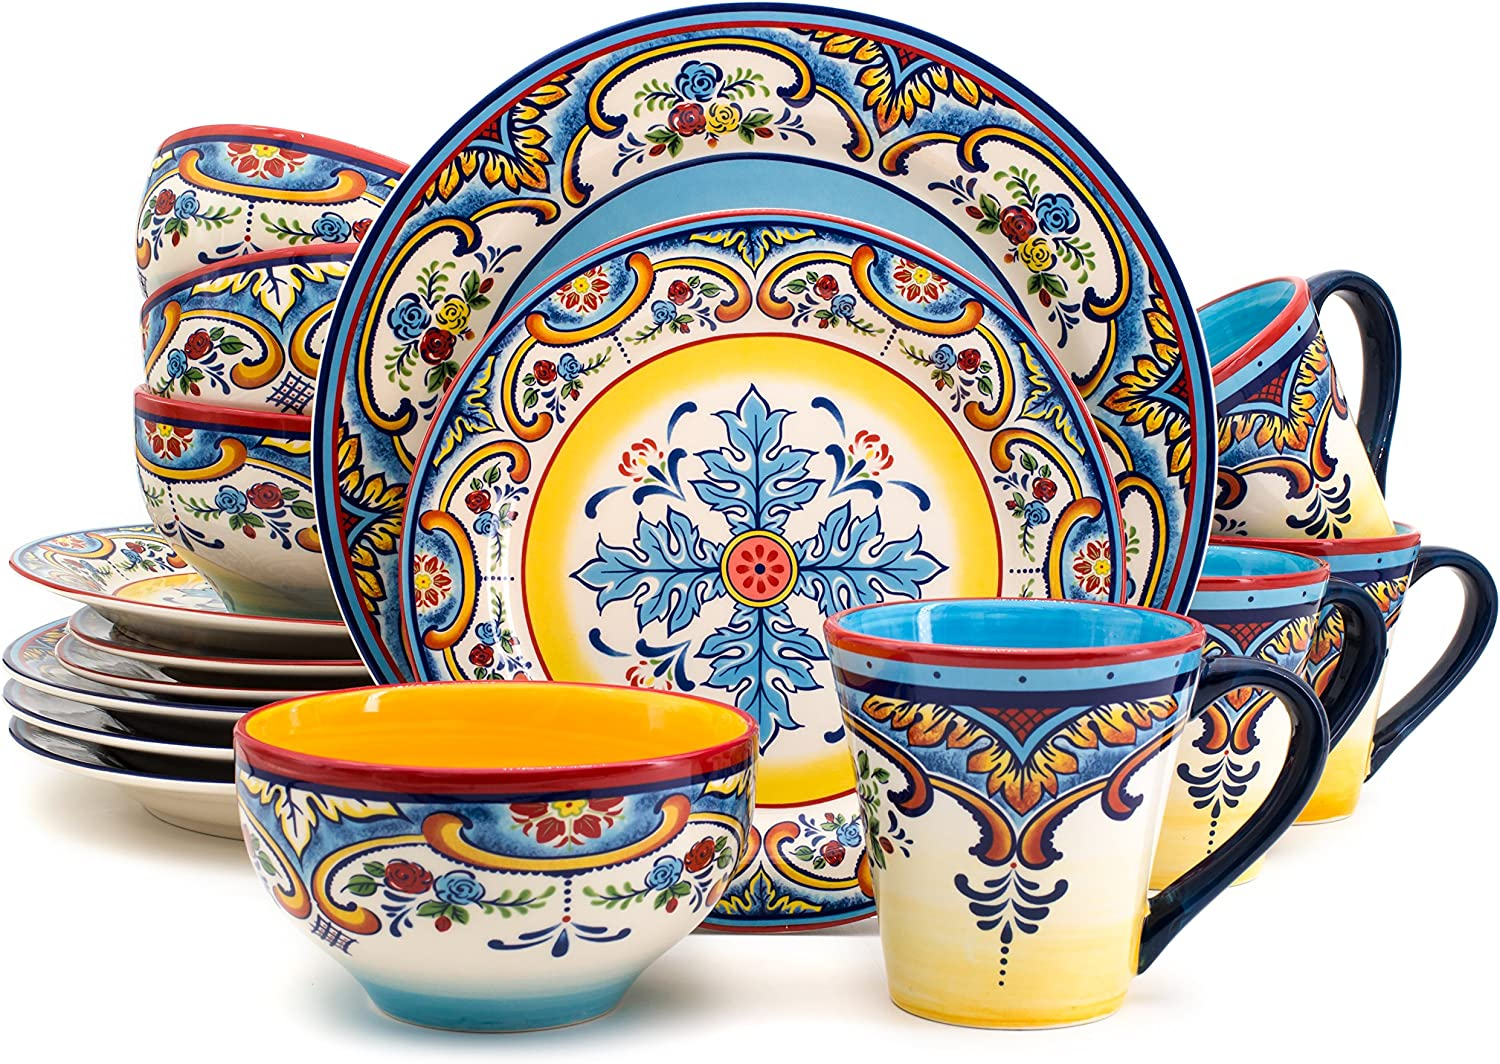 Euro Ceramica Inc. YS-ZB-1001 16 Piece Dinnerware Set Kitchen and Dining, Service for 4, Spanish Floral Design, Multicolor, Blue and Yellow